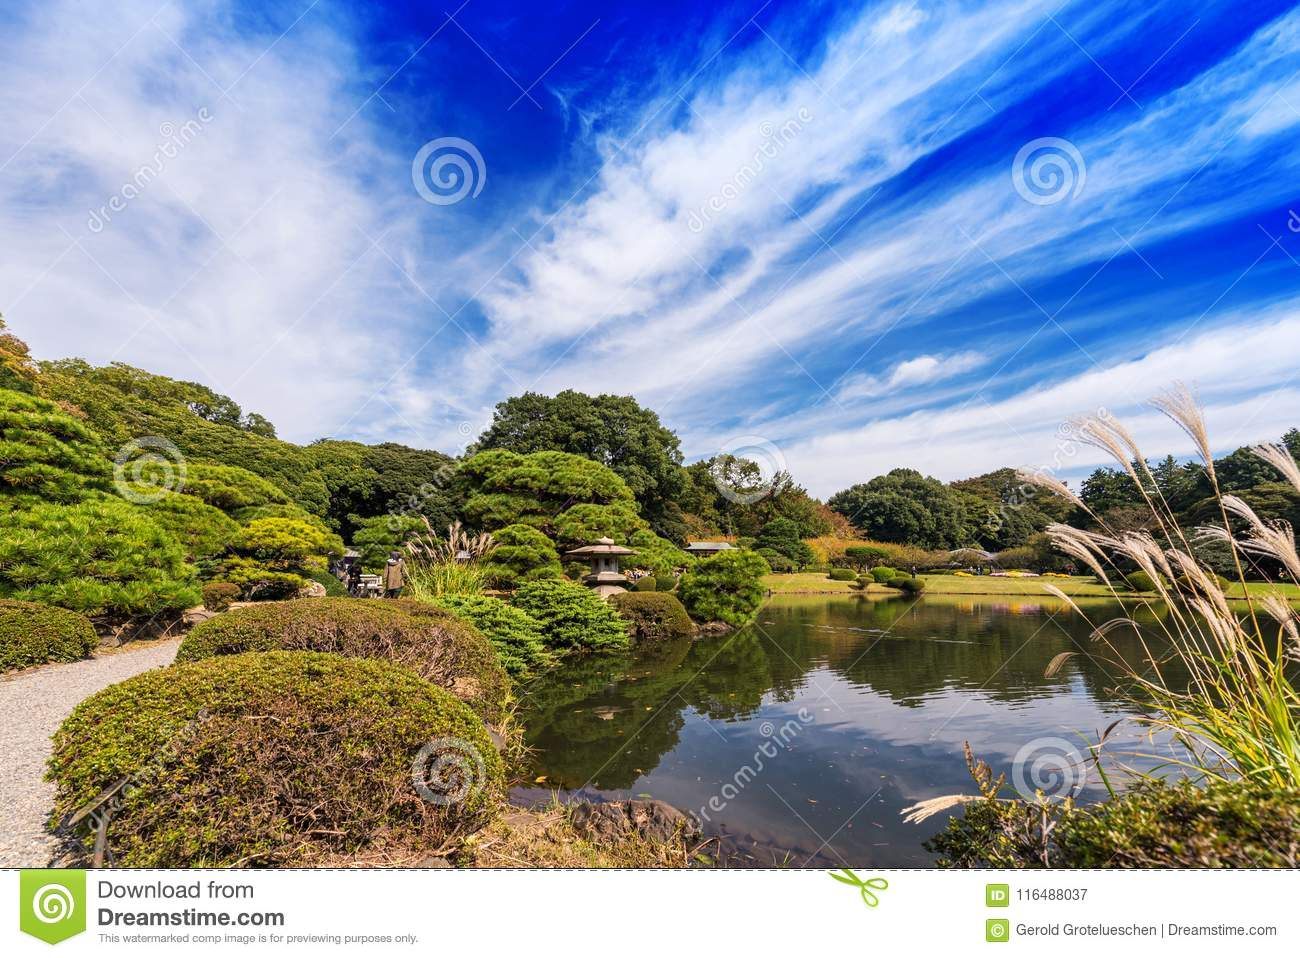 Autumn in the Shinjuku park, Tokyo, Japan. Copy space for text.